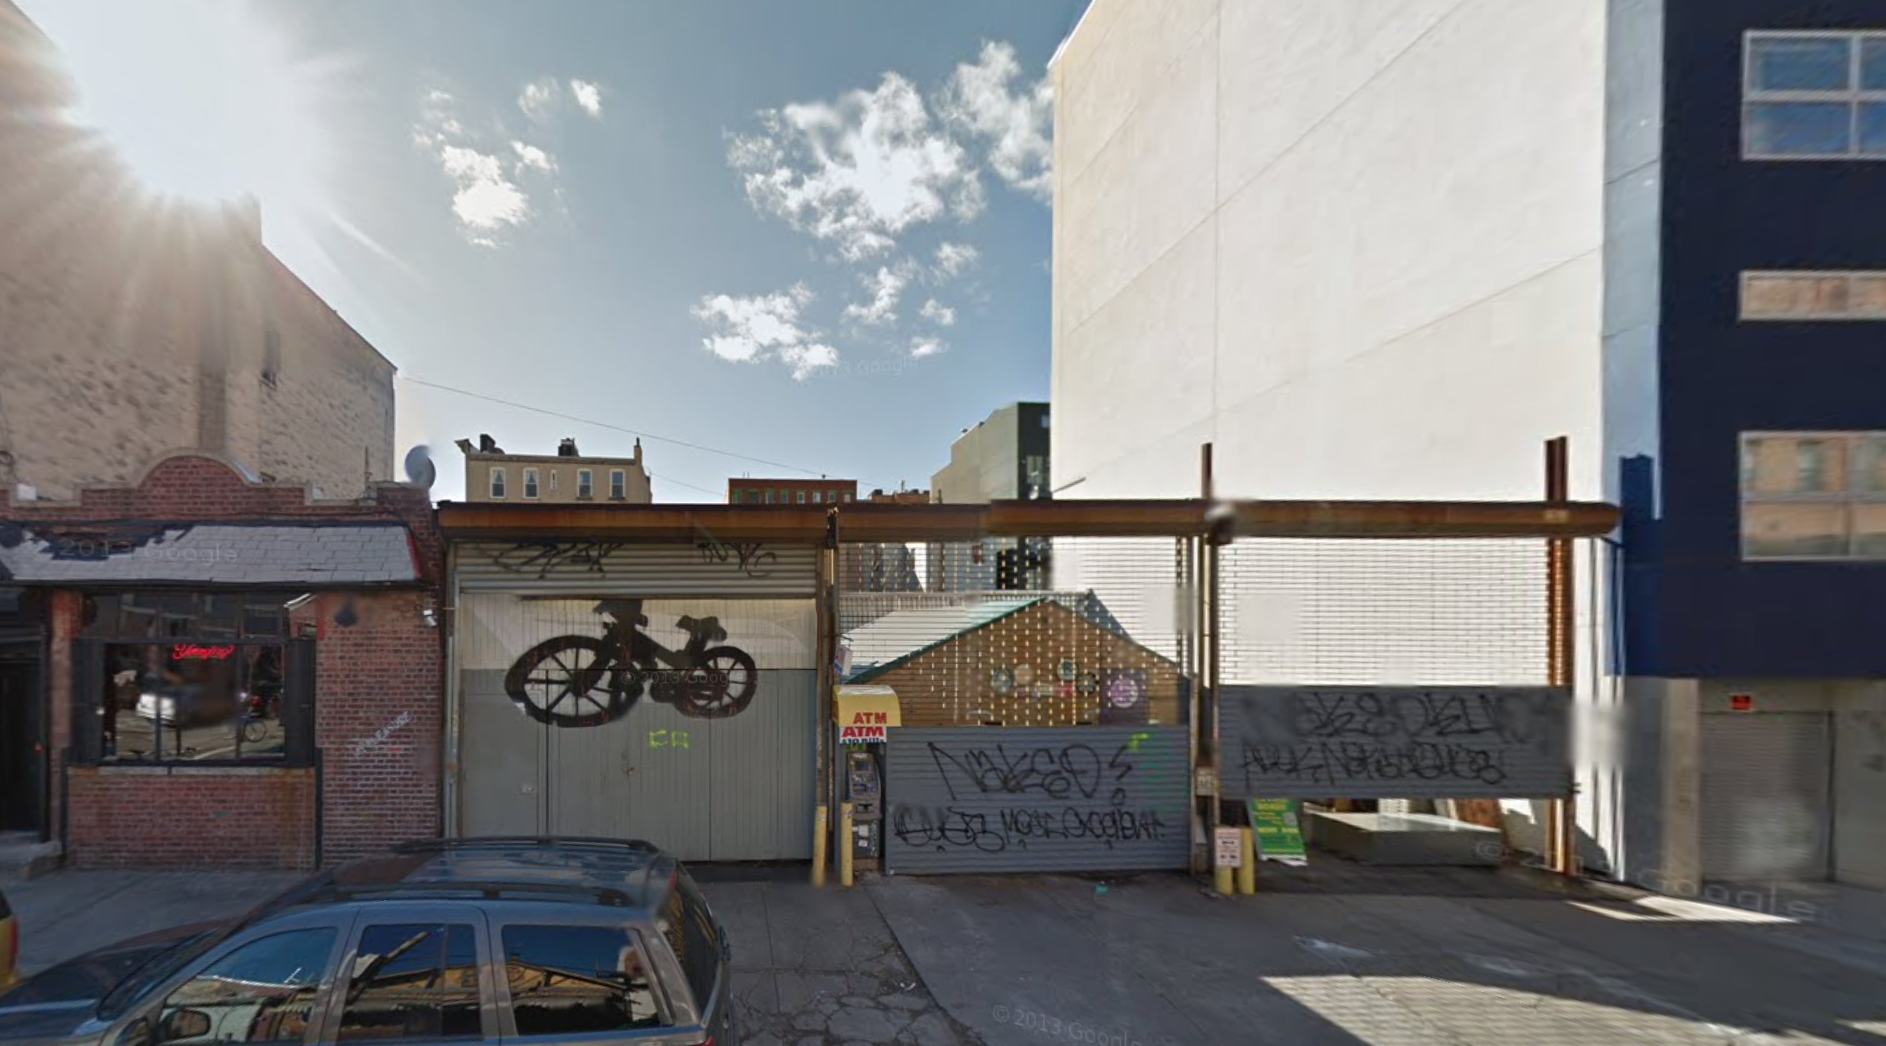 106 North 3rd Street, image via Google Maps